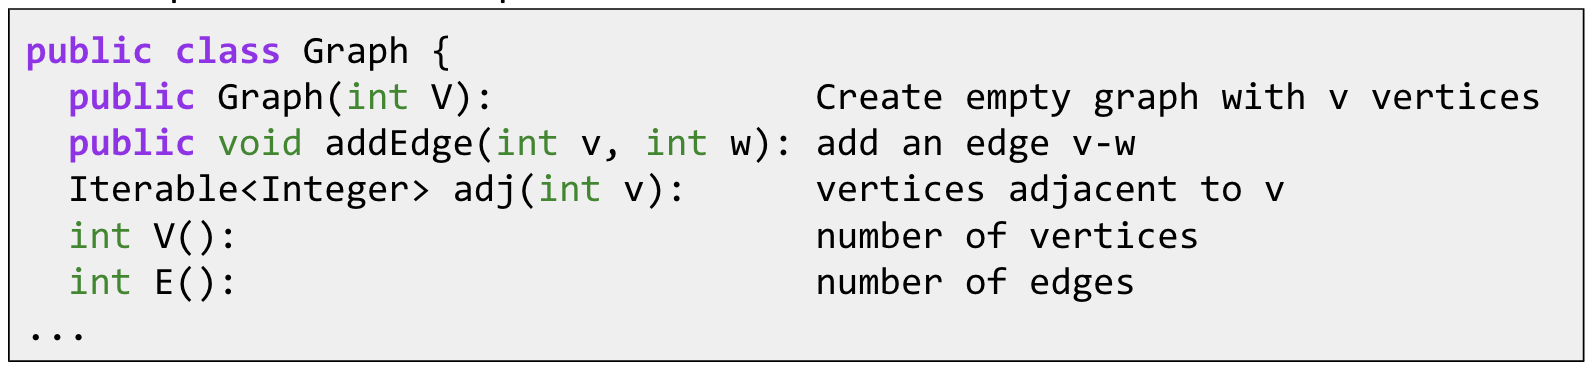 API from the optional textbook